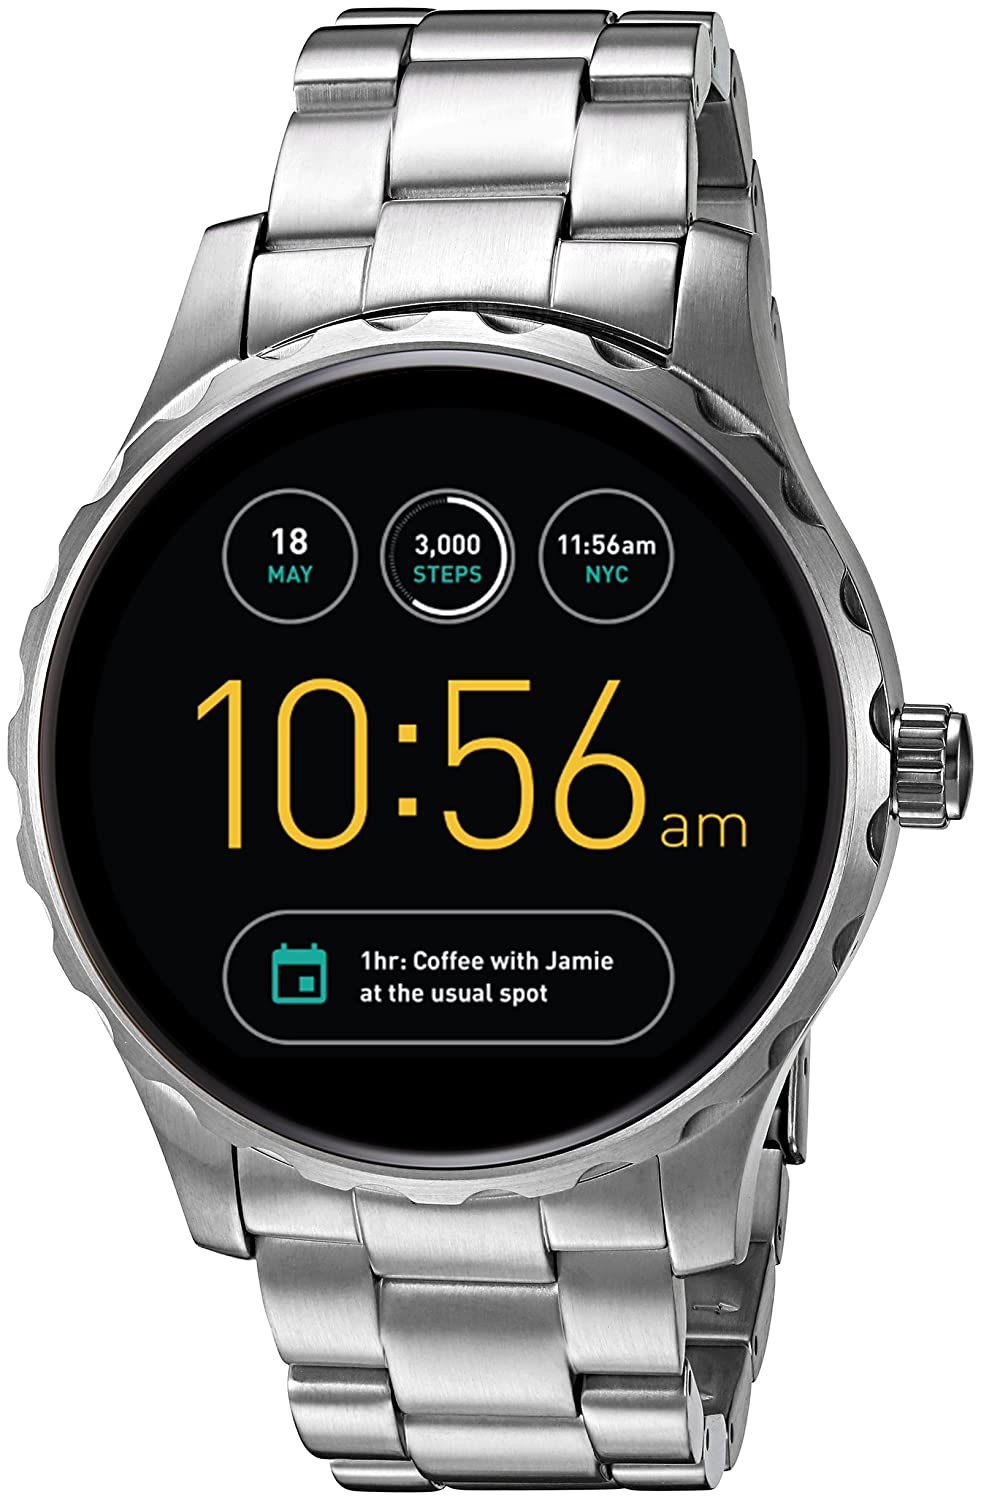 cc2c37e11c016 Buy Fossil Q Marshal Digital Multi-Colour Dial Men s Watch-FTW2109 Online  at Low Prices in India - Amazon.in